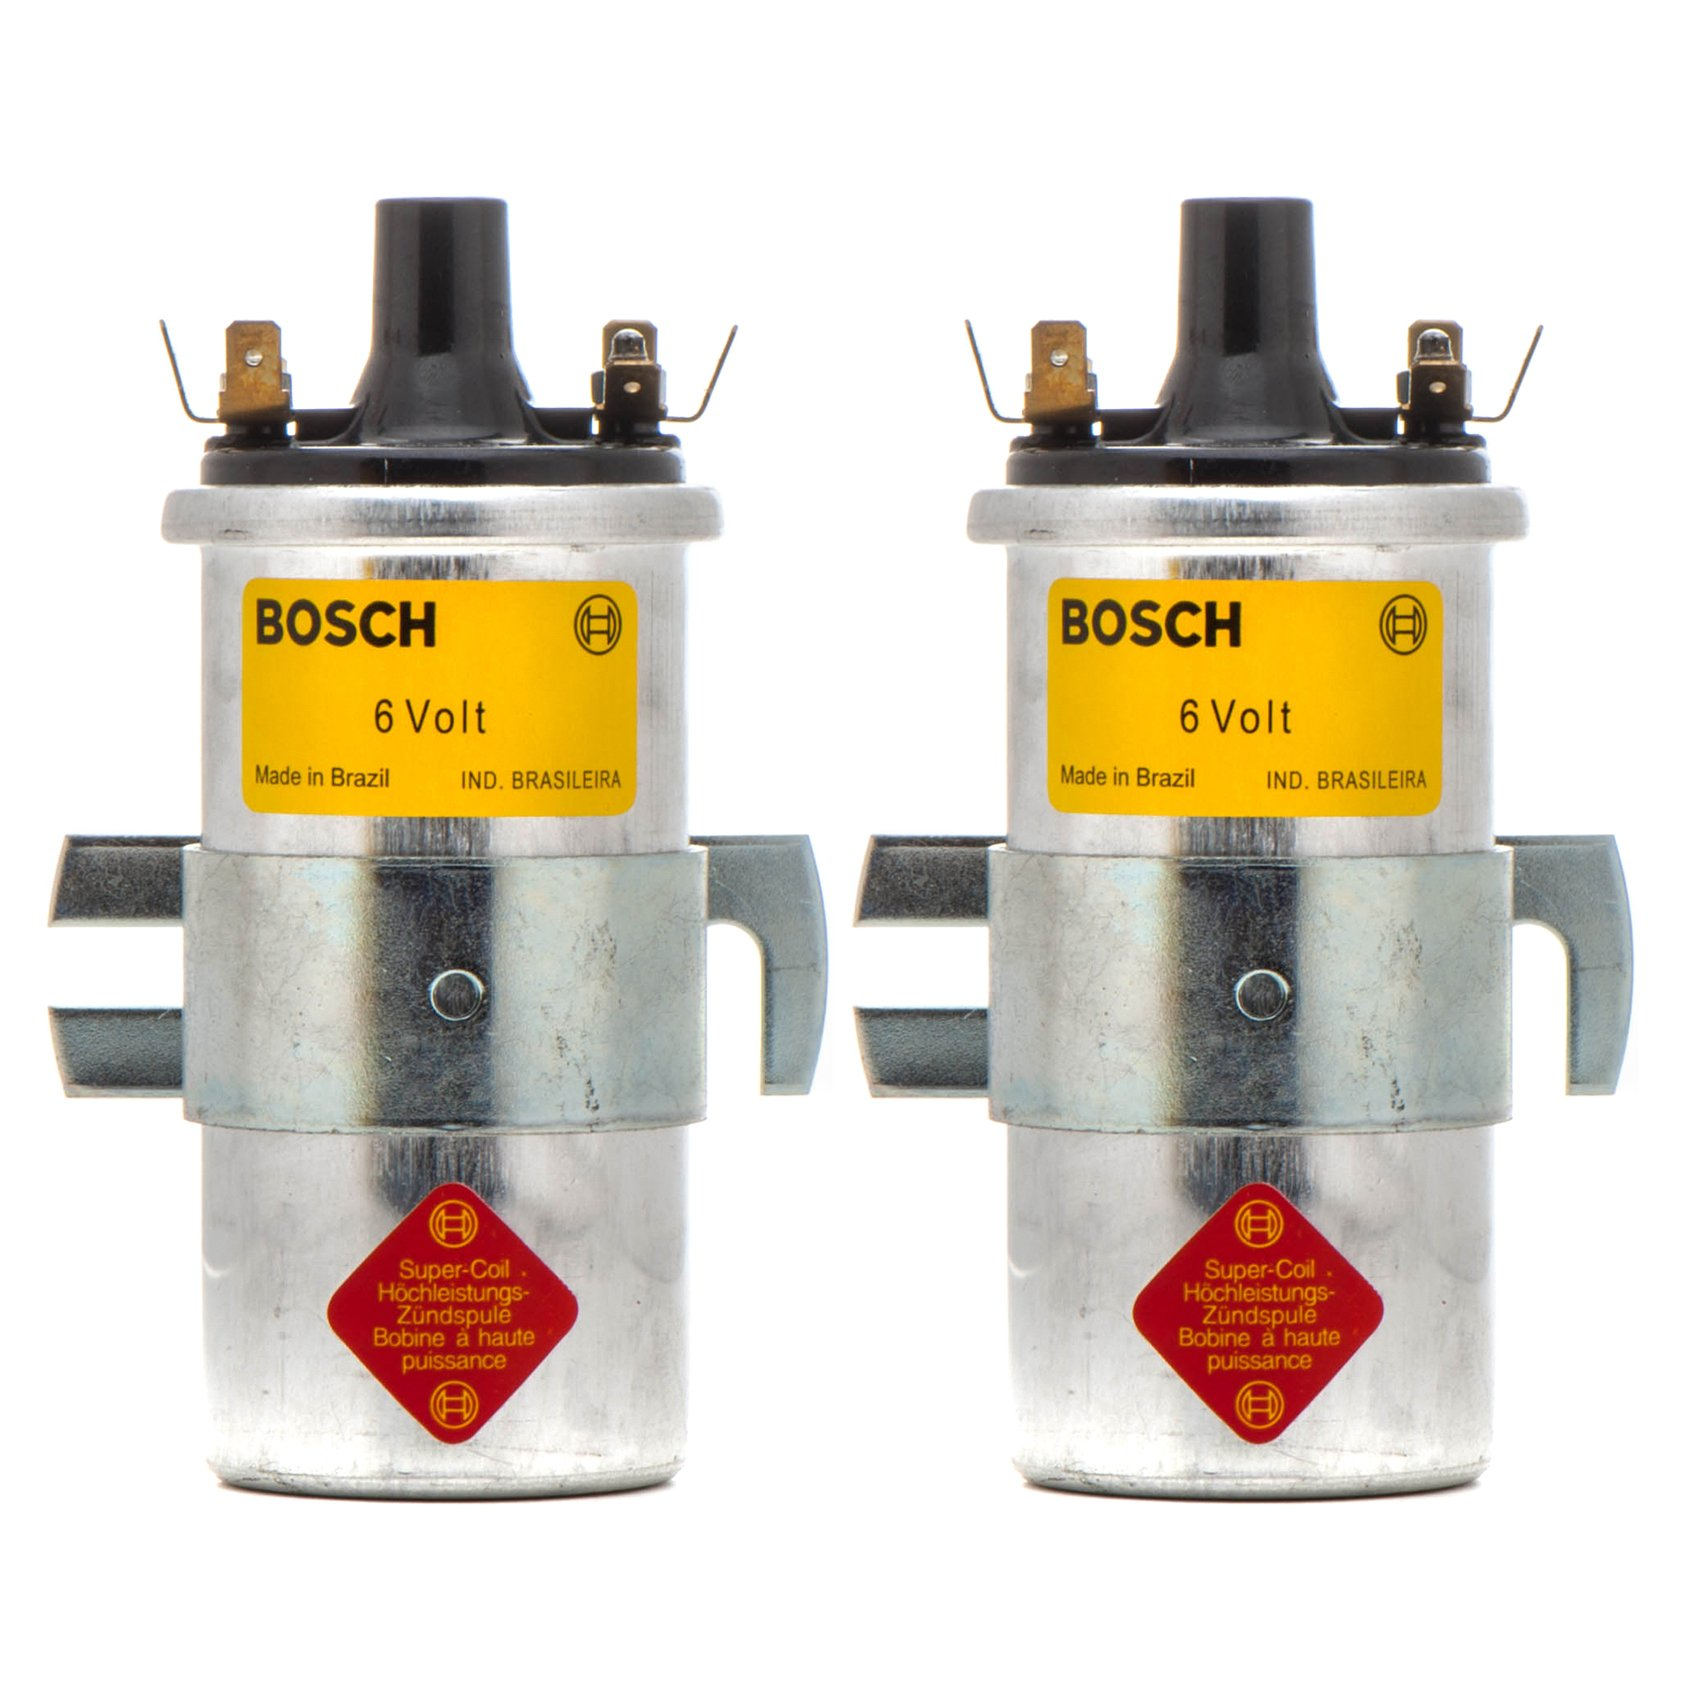 Brand New Set Of Two Bosch Ignition Coils Boxer Six Volt BMW R Airhead Motorcycles 12 13 1 243 452